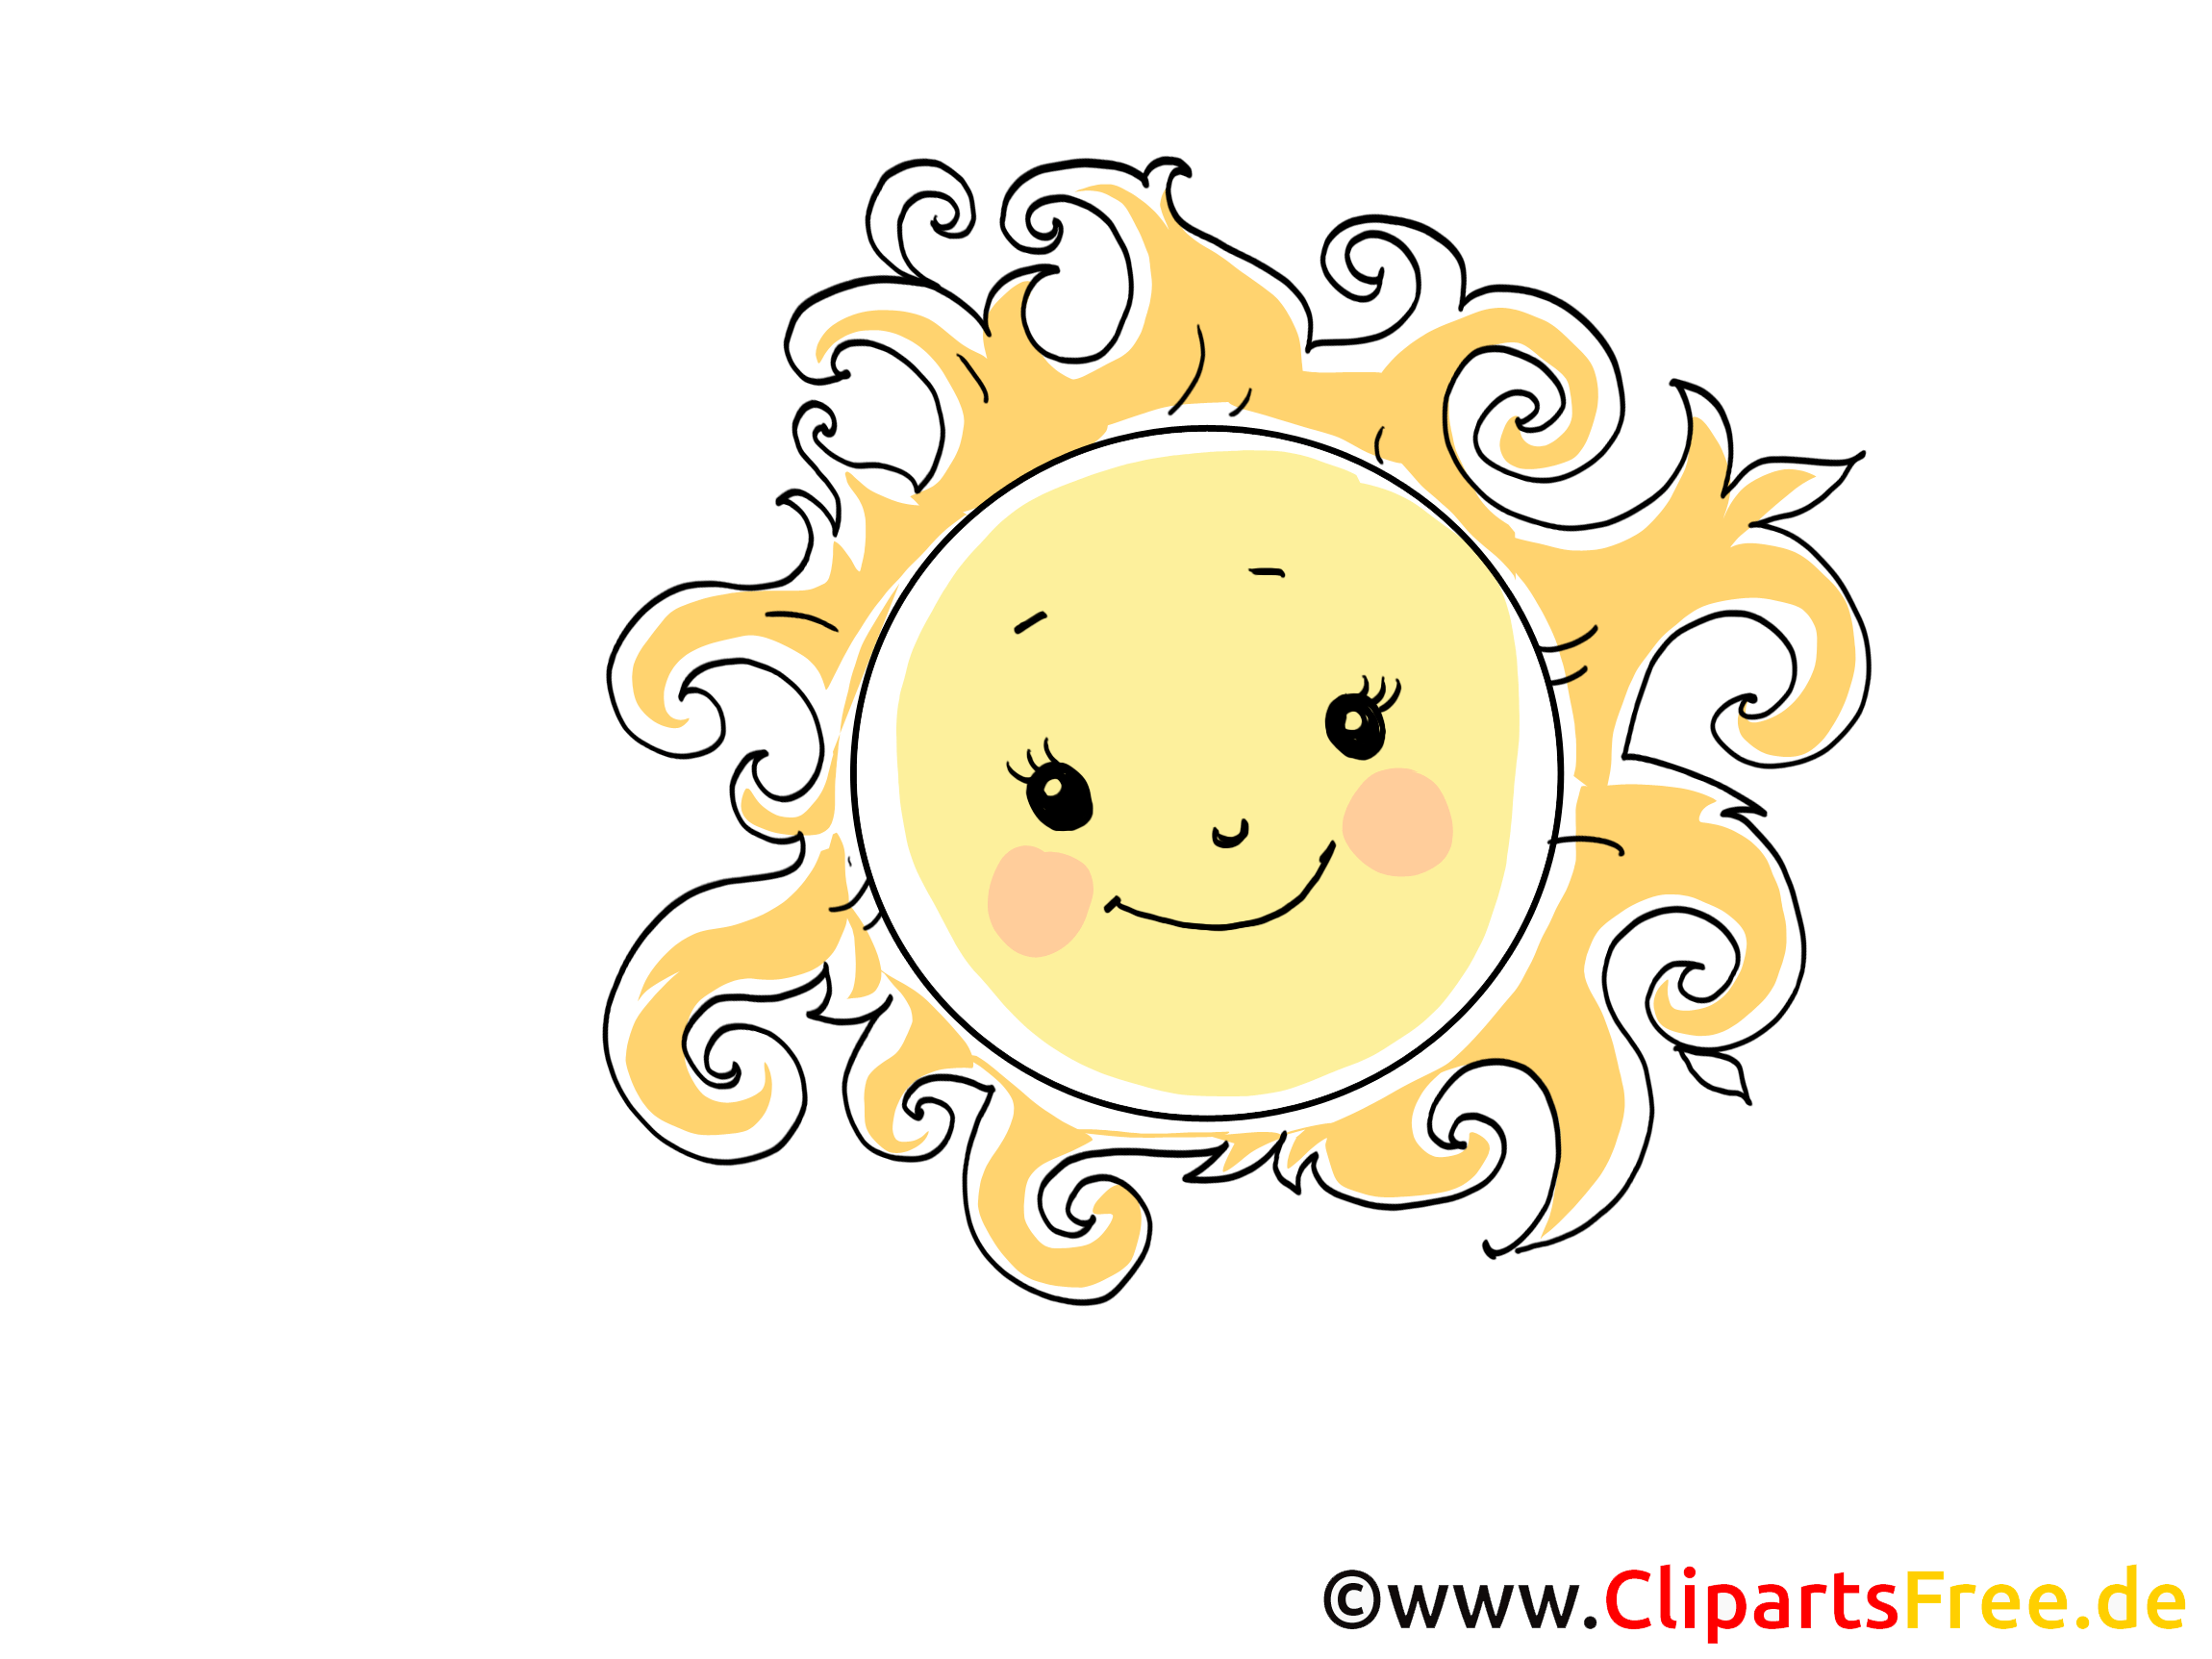 Sonne Bilder Comic Sonne Clip Art Bild Cartoon Comic Grafik